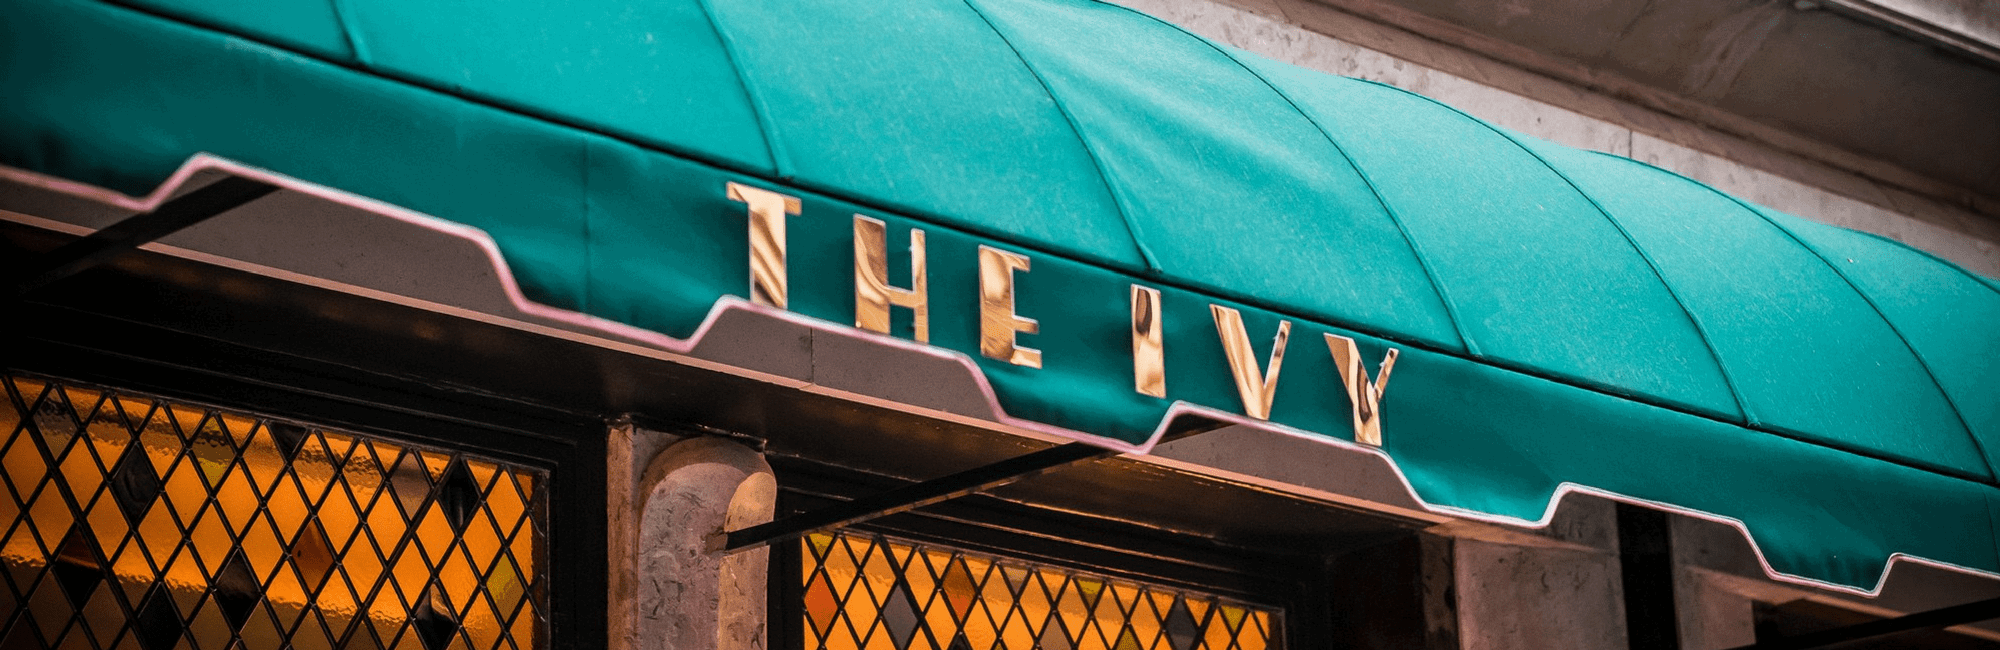 The Ivy restaurant in West Street, Covent Garden, London